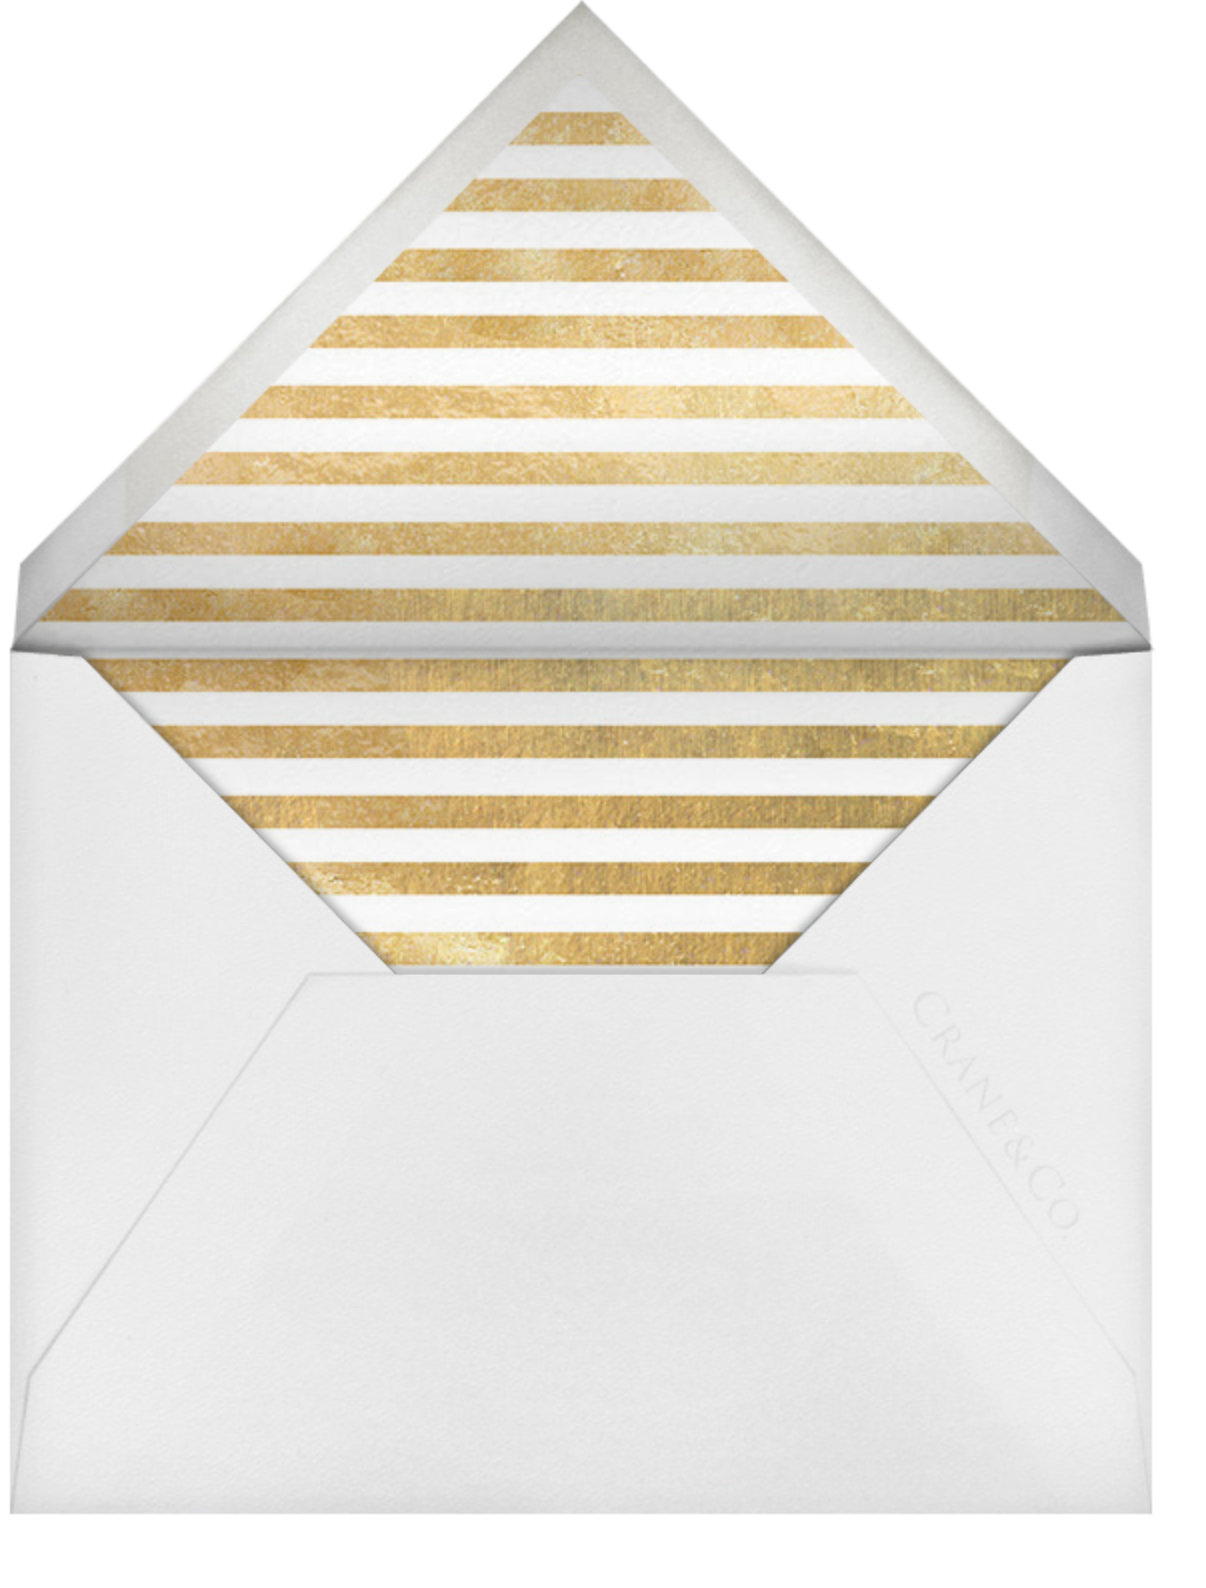 Escalier (Greeting) - Ivory and Gold - Paperless Post - Use your own logo - envelope back